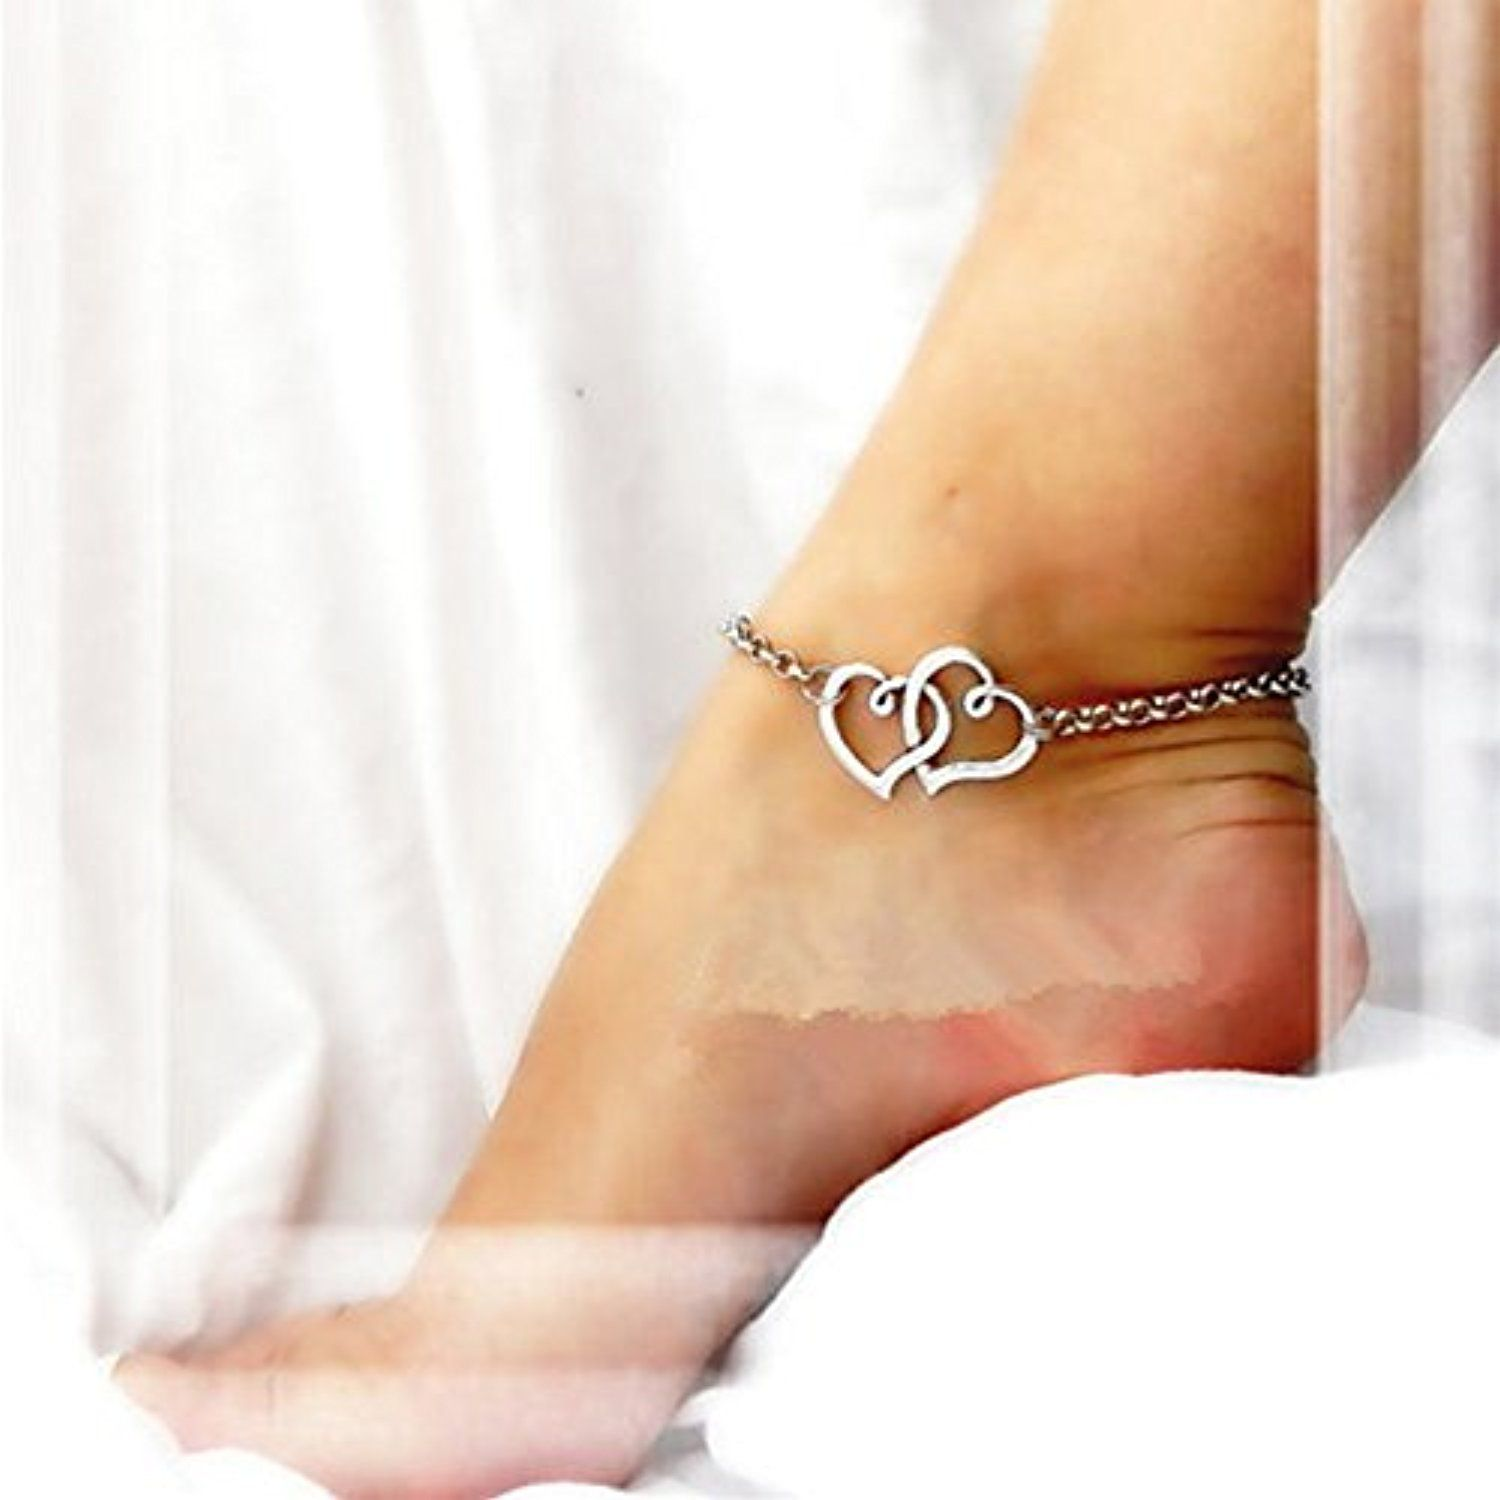 bracelets clear diamond fine anklets buy gold natural ankle white where pin bracelet sparkly can anklet i